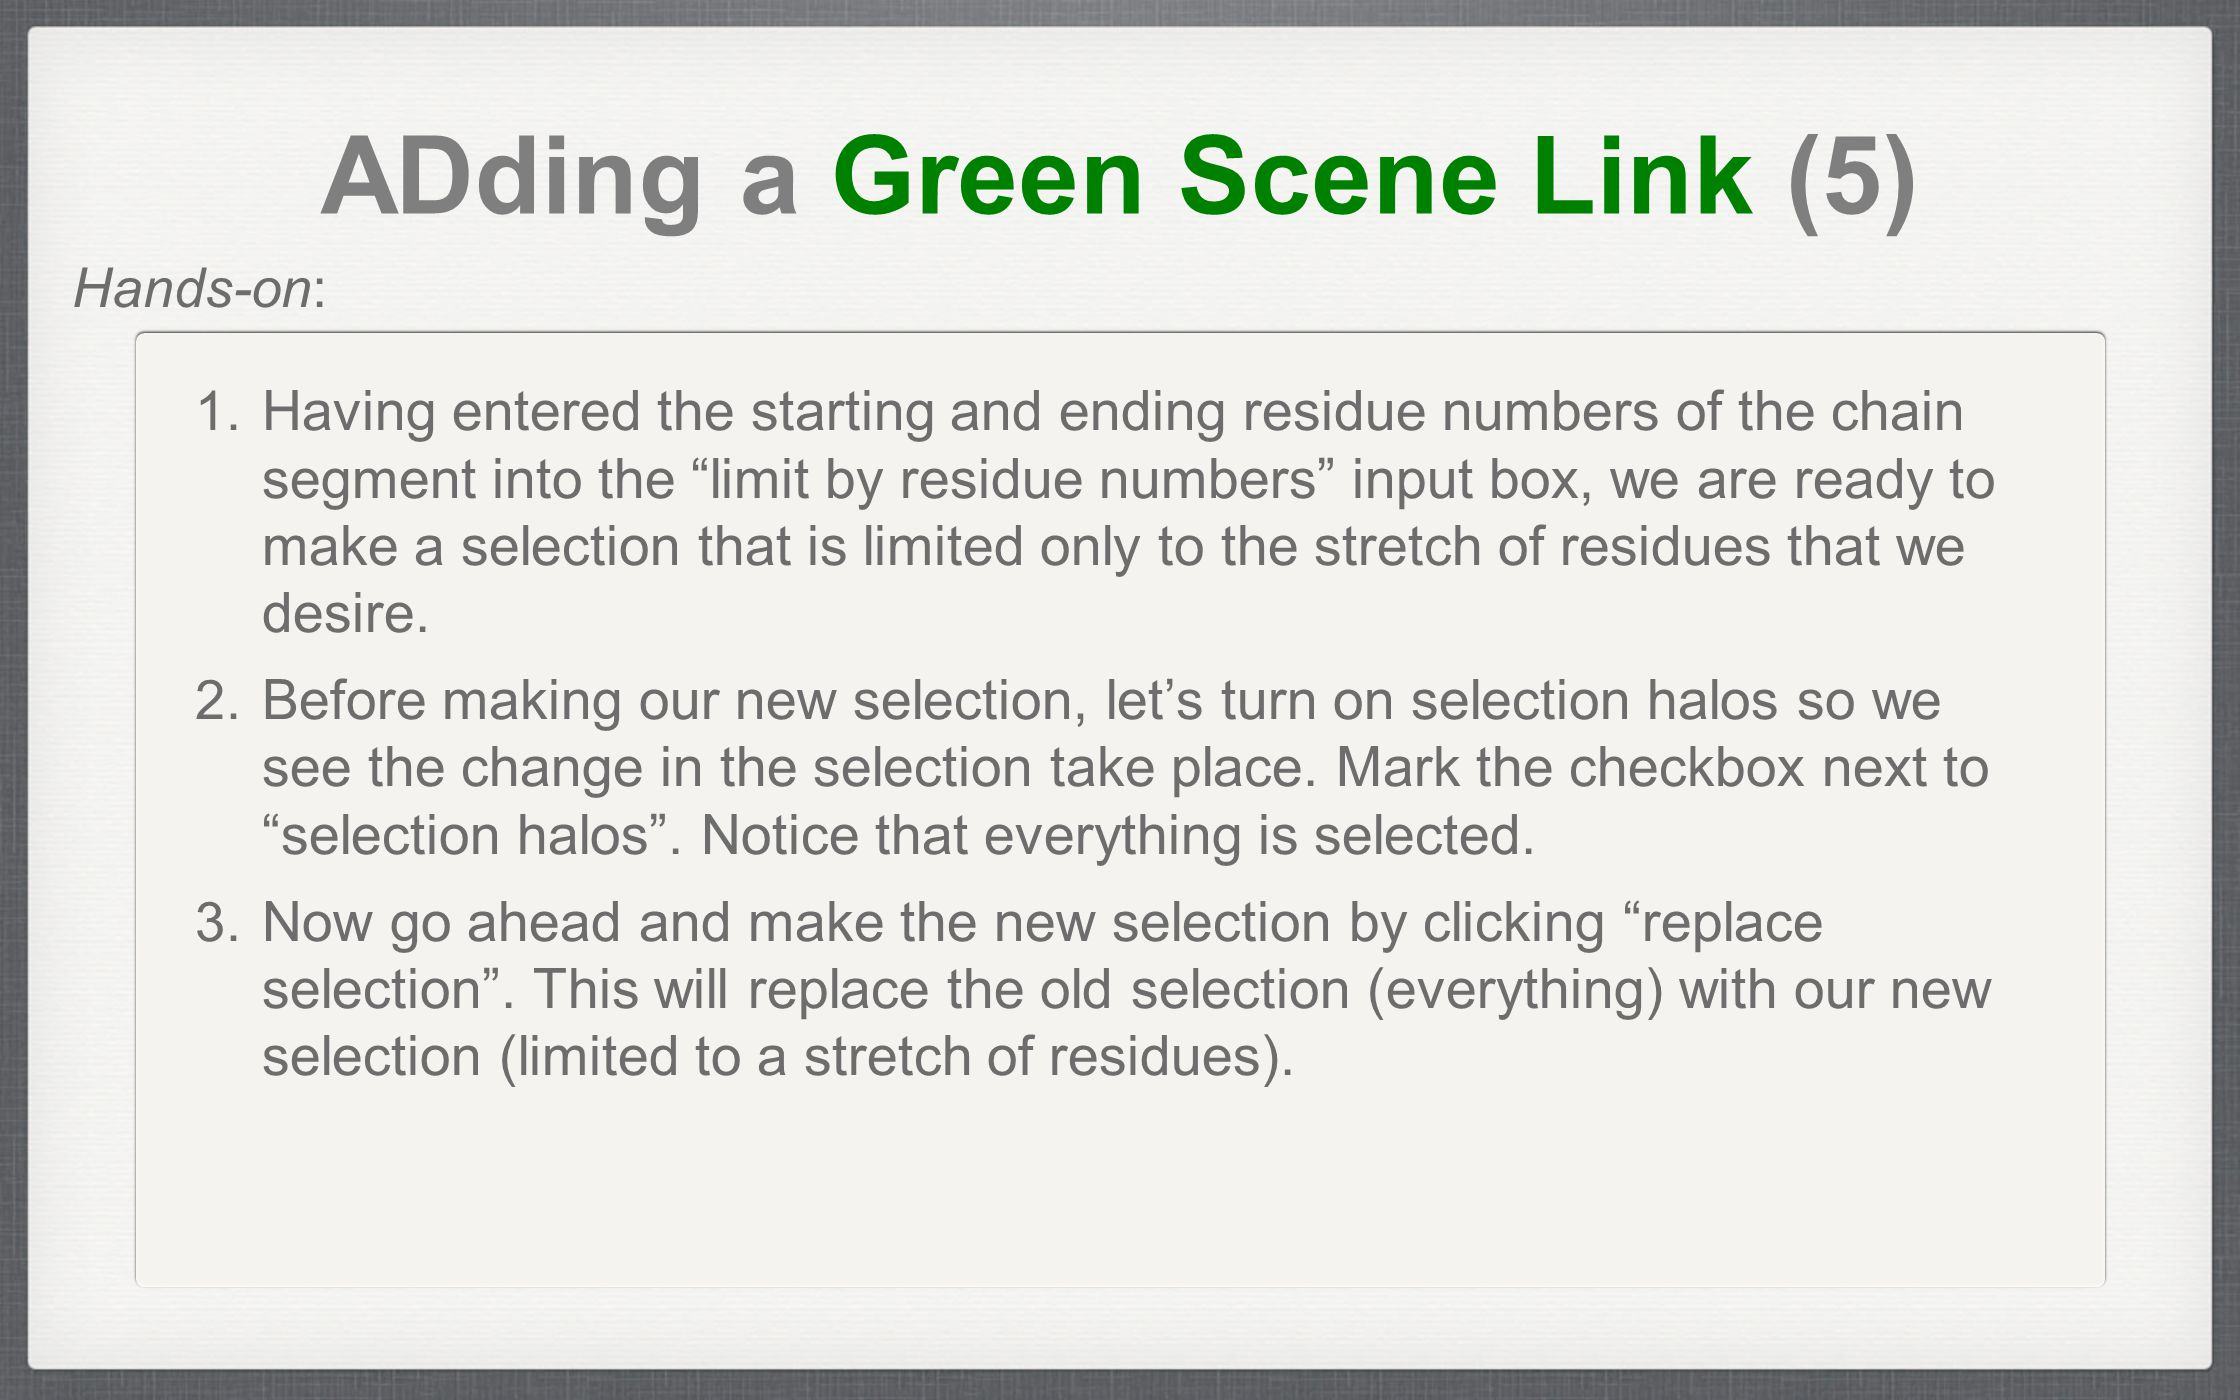 ADding a Green Scene Link (5) 1.